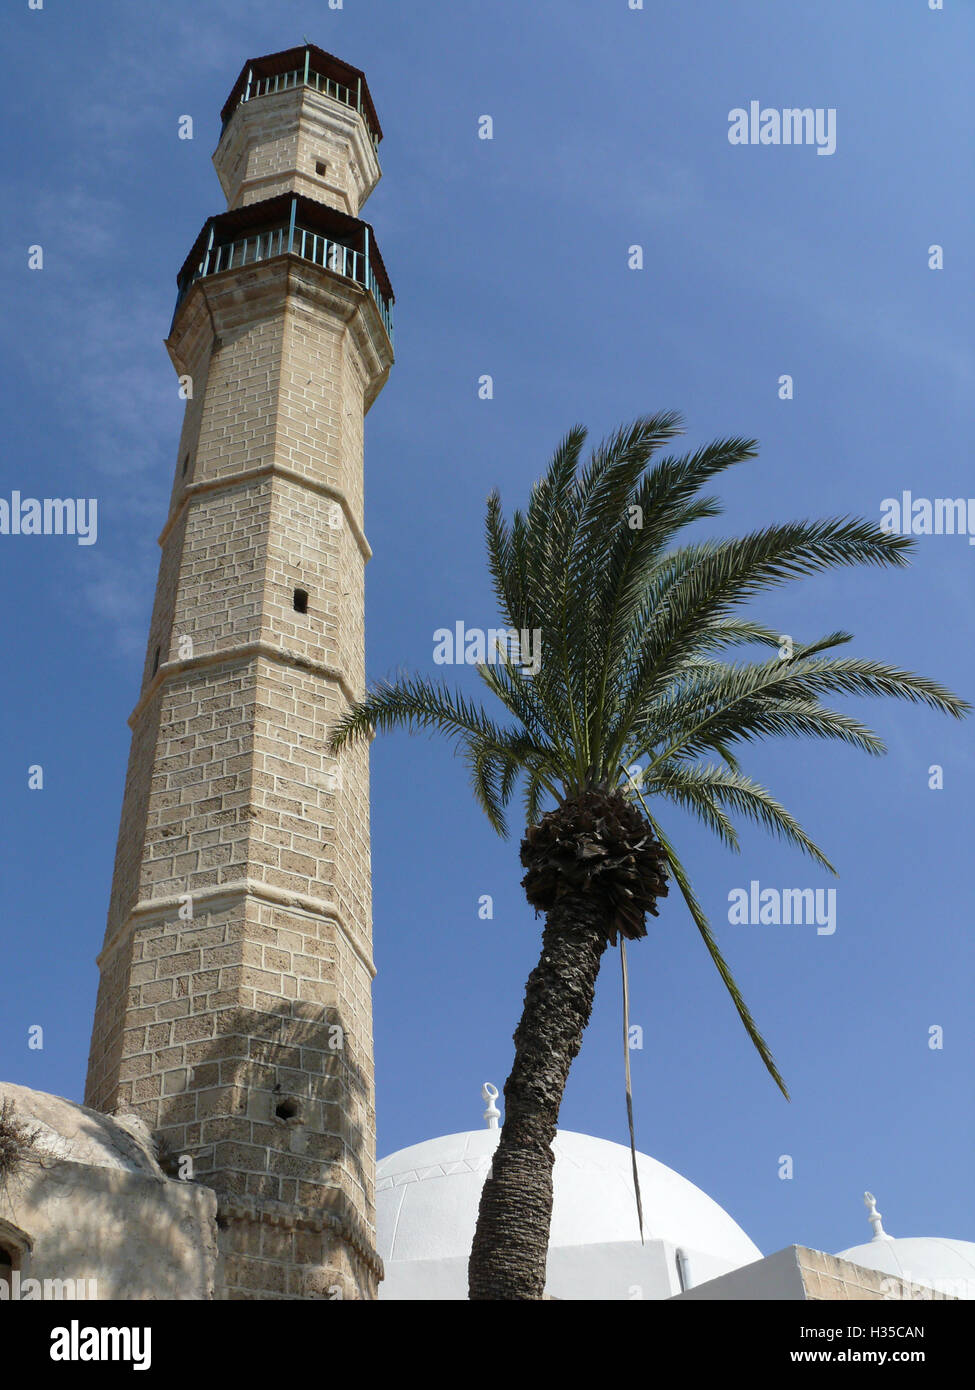 An upwards perspective view of a octagonal tower and a palm tree Stock Photo